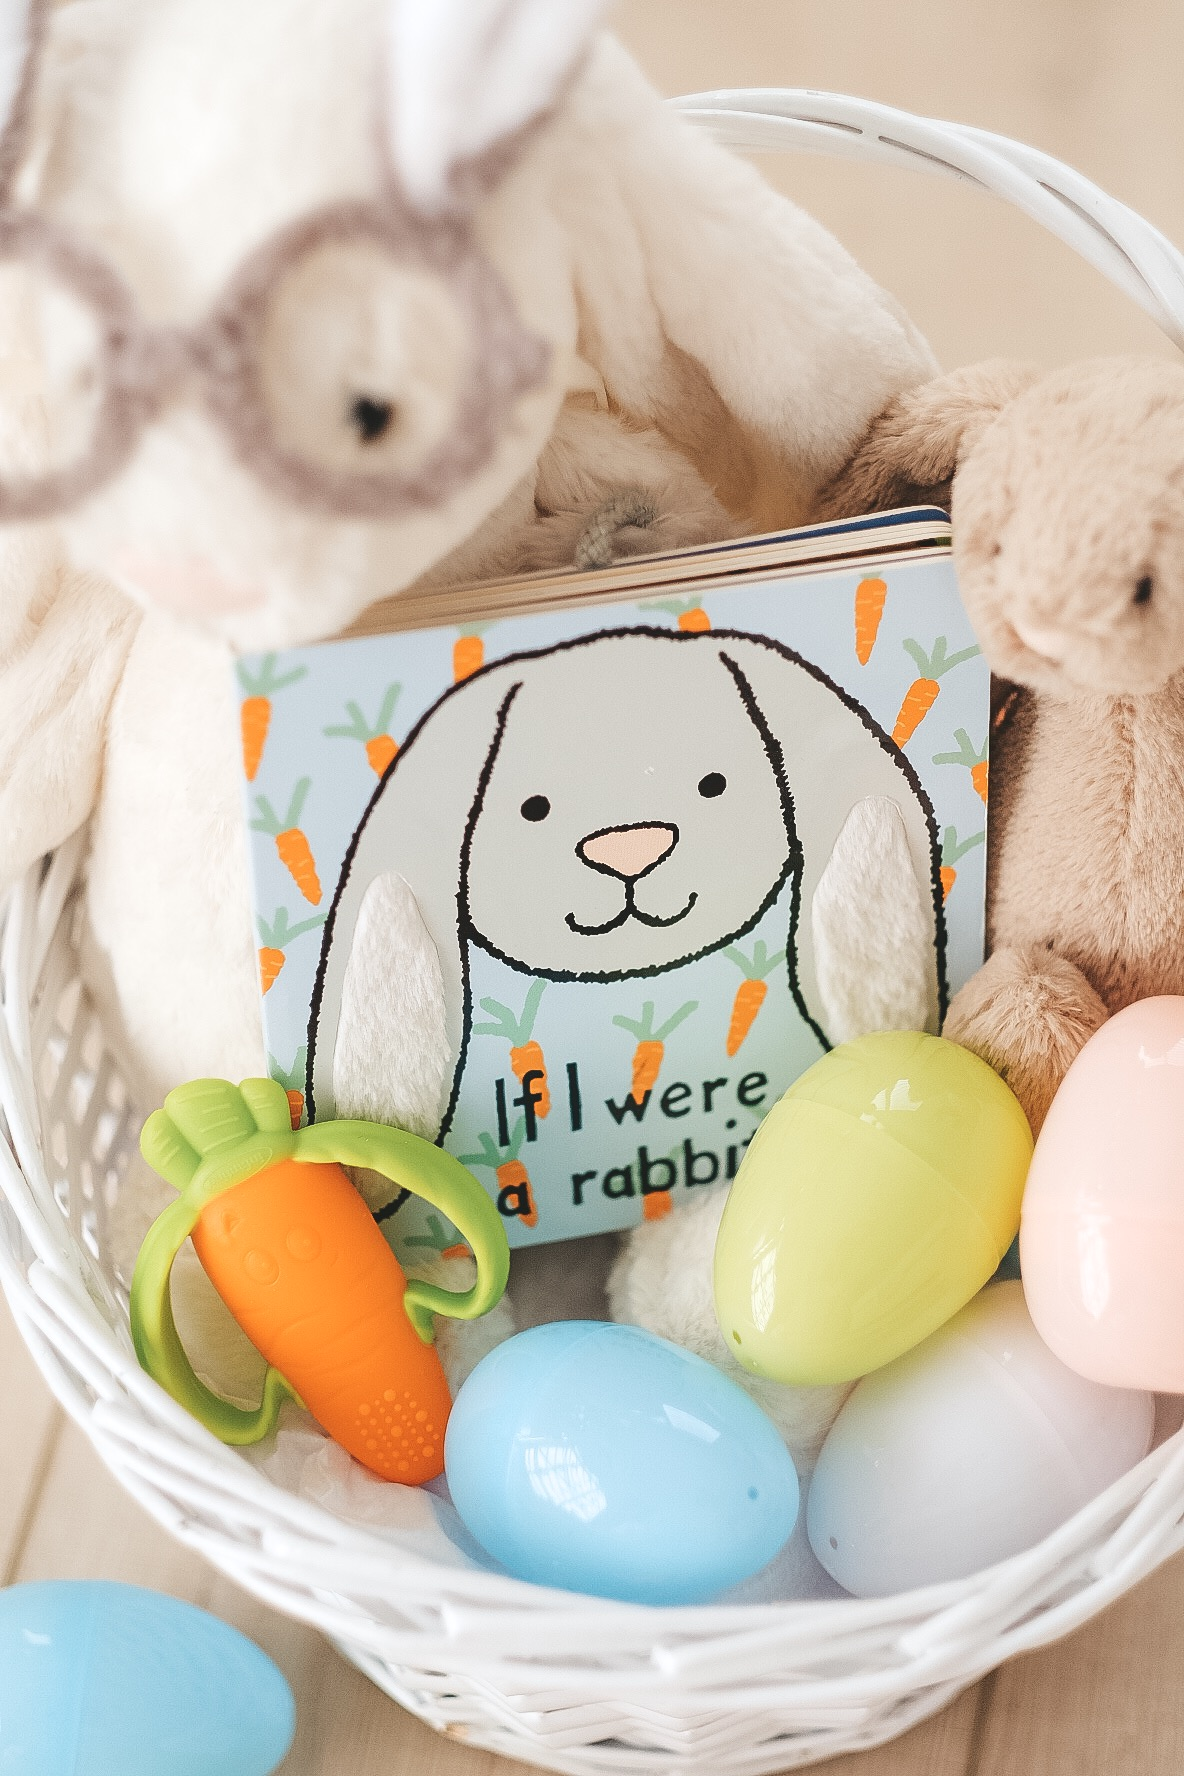 Easter basket ideas for children under 1.  Baby Easter basket ideas. Jellycat book for Easter.